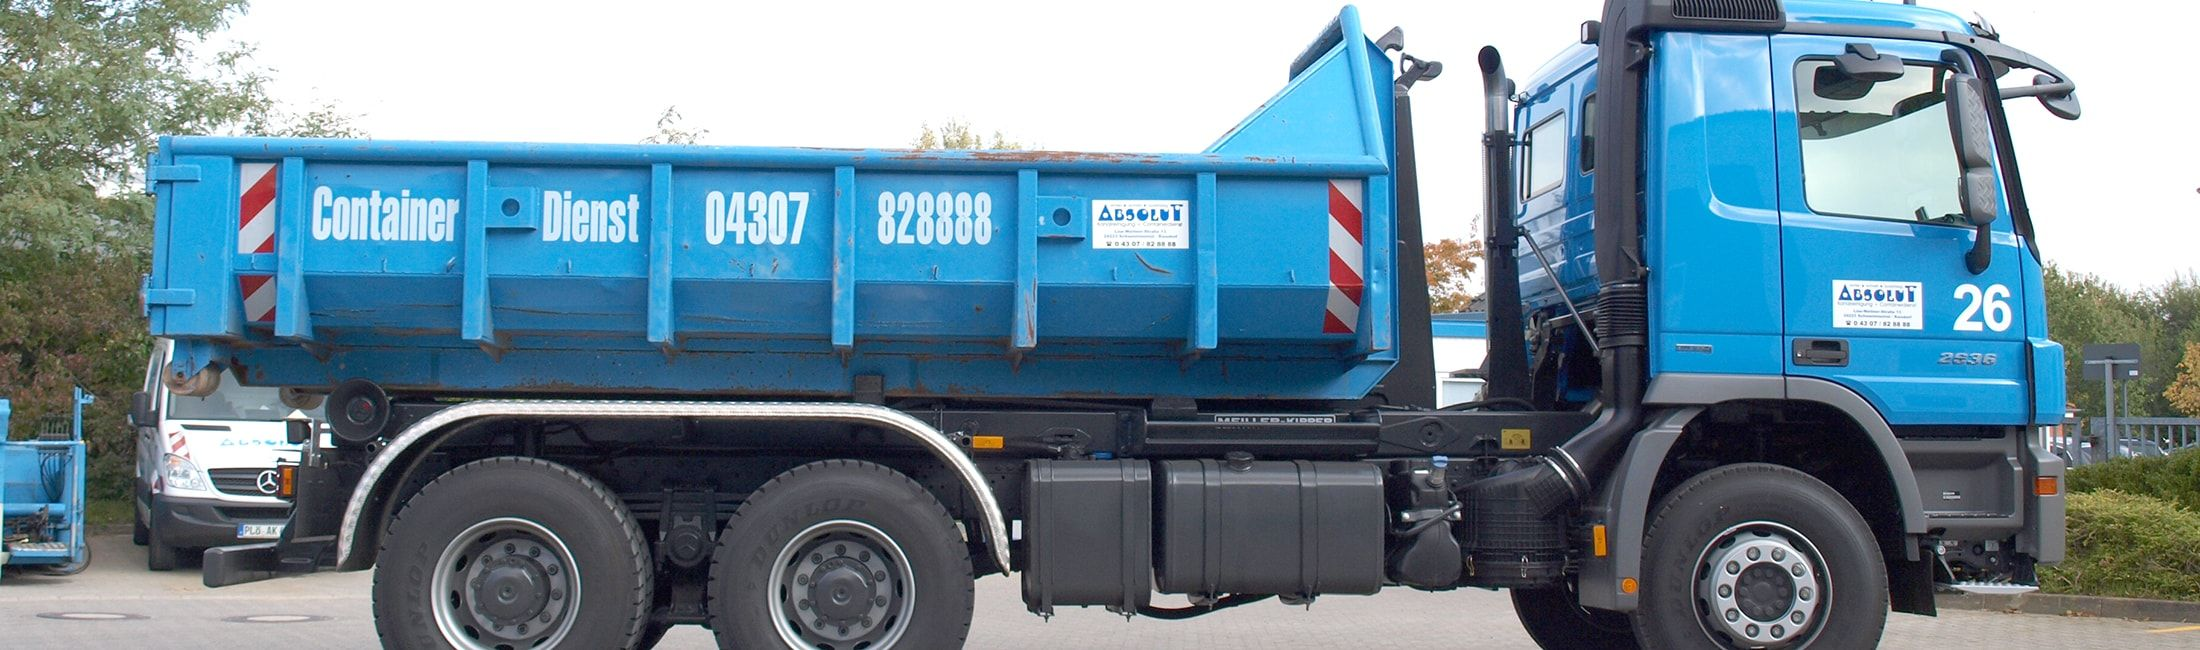 Absolut Container LKW